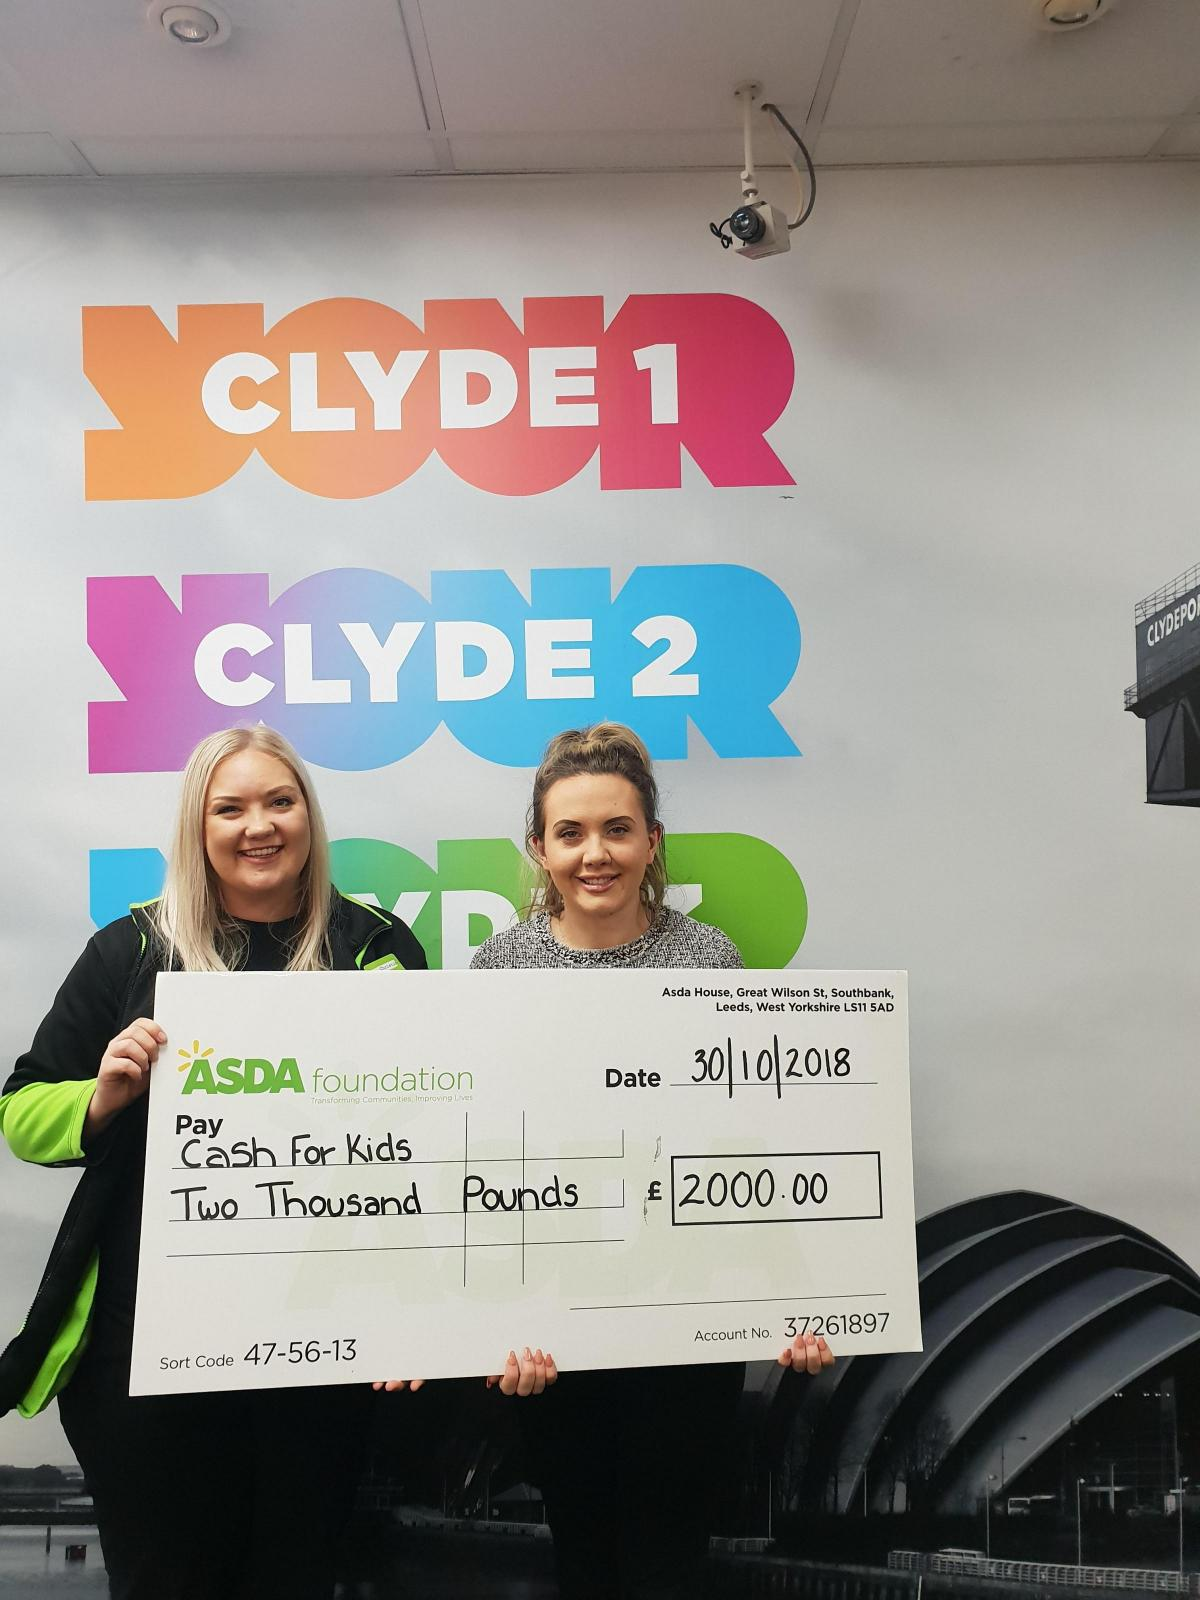 Clyde 1 dating uk